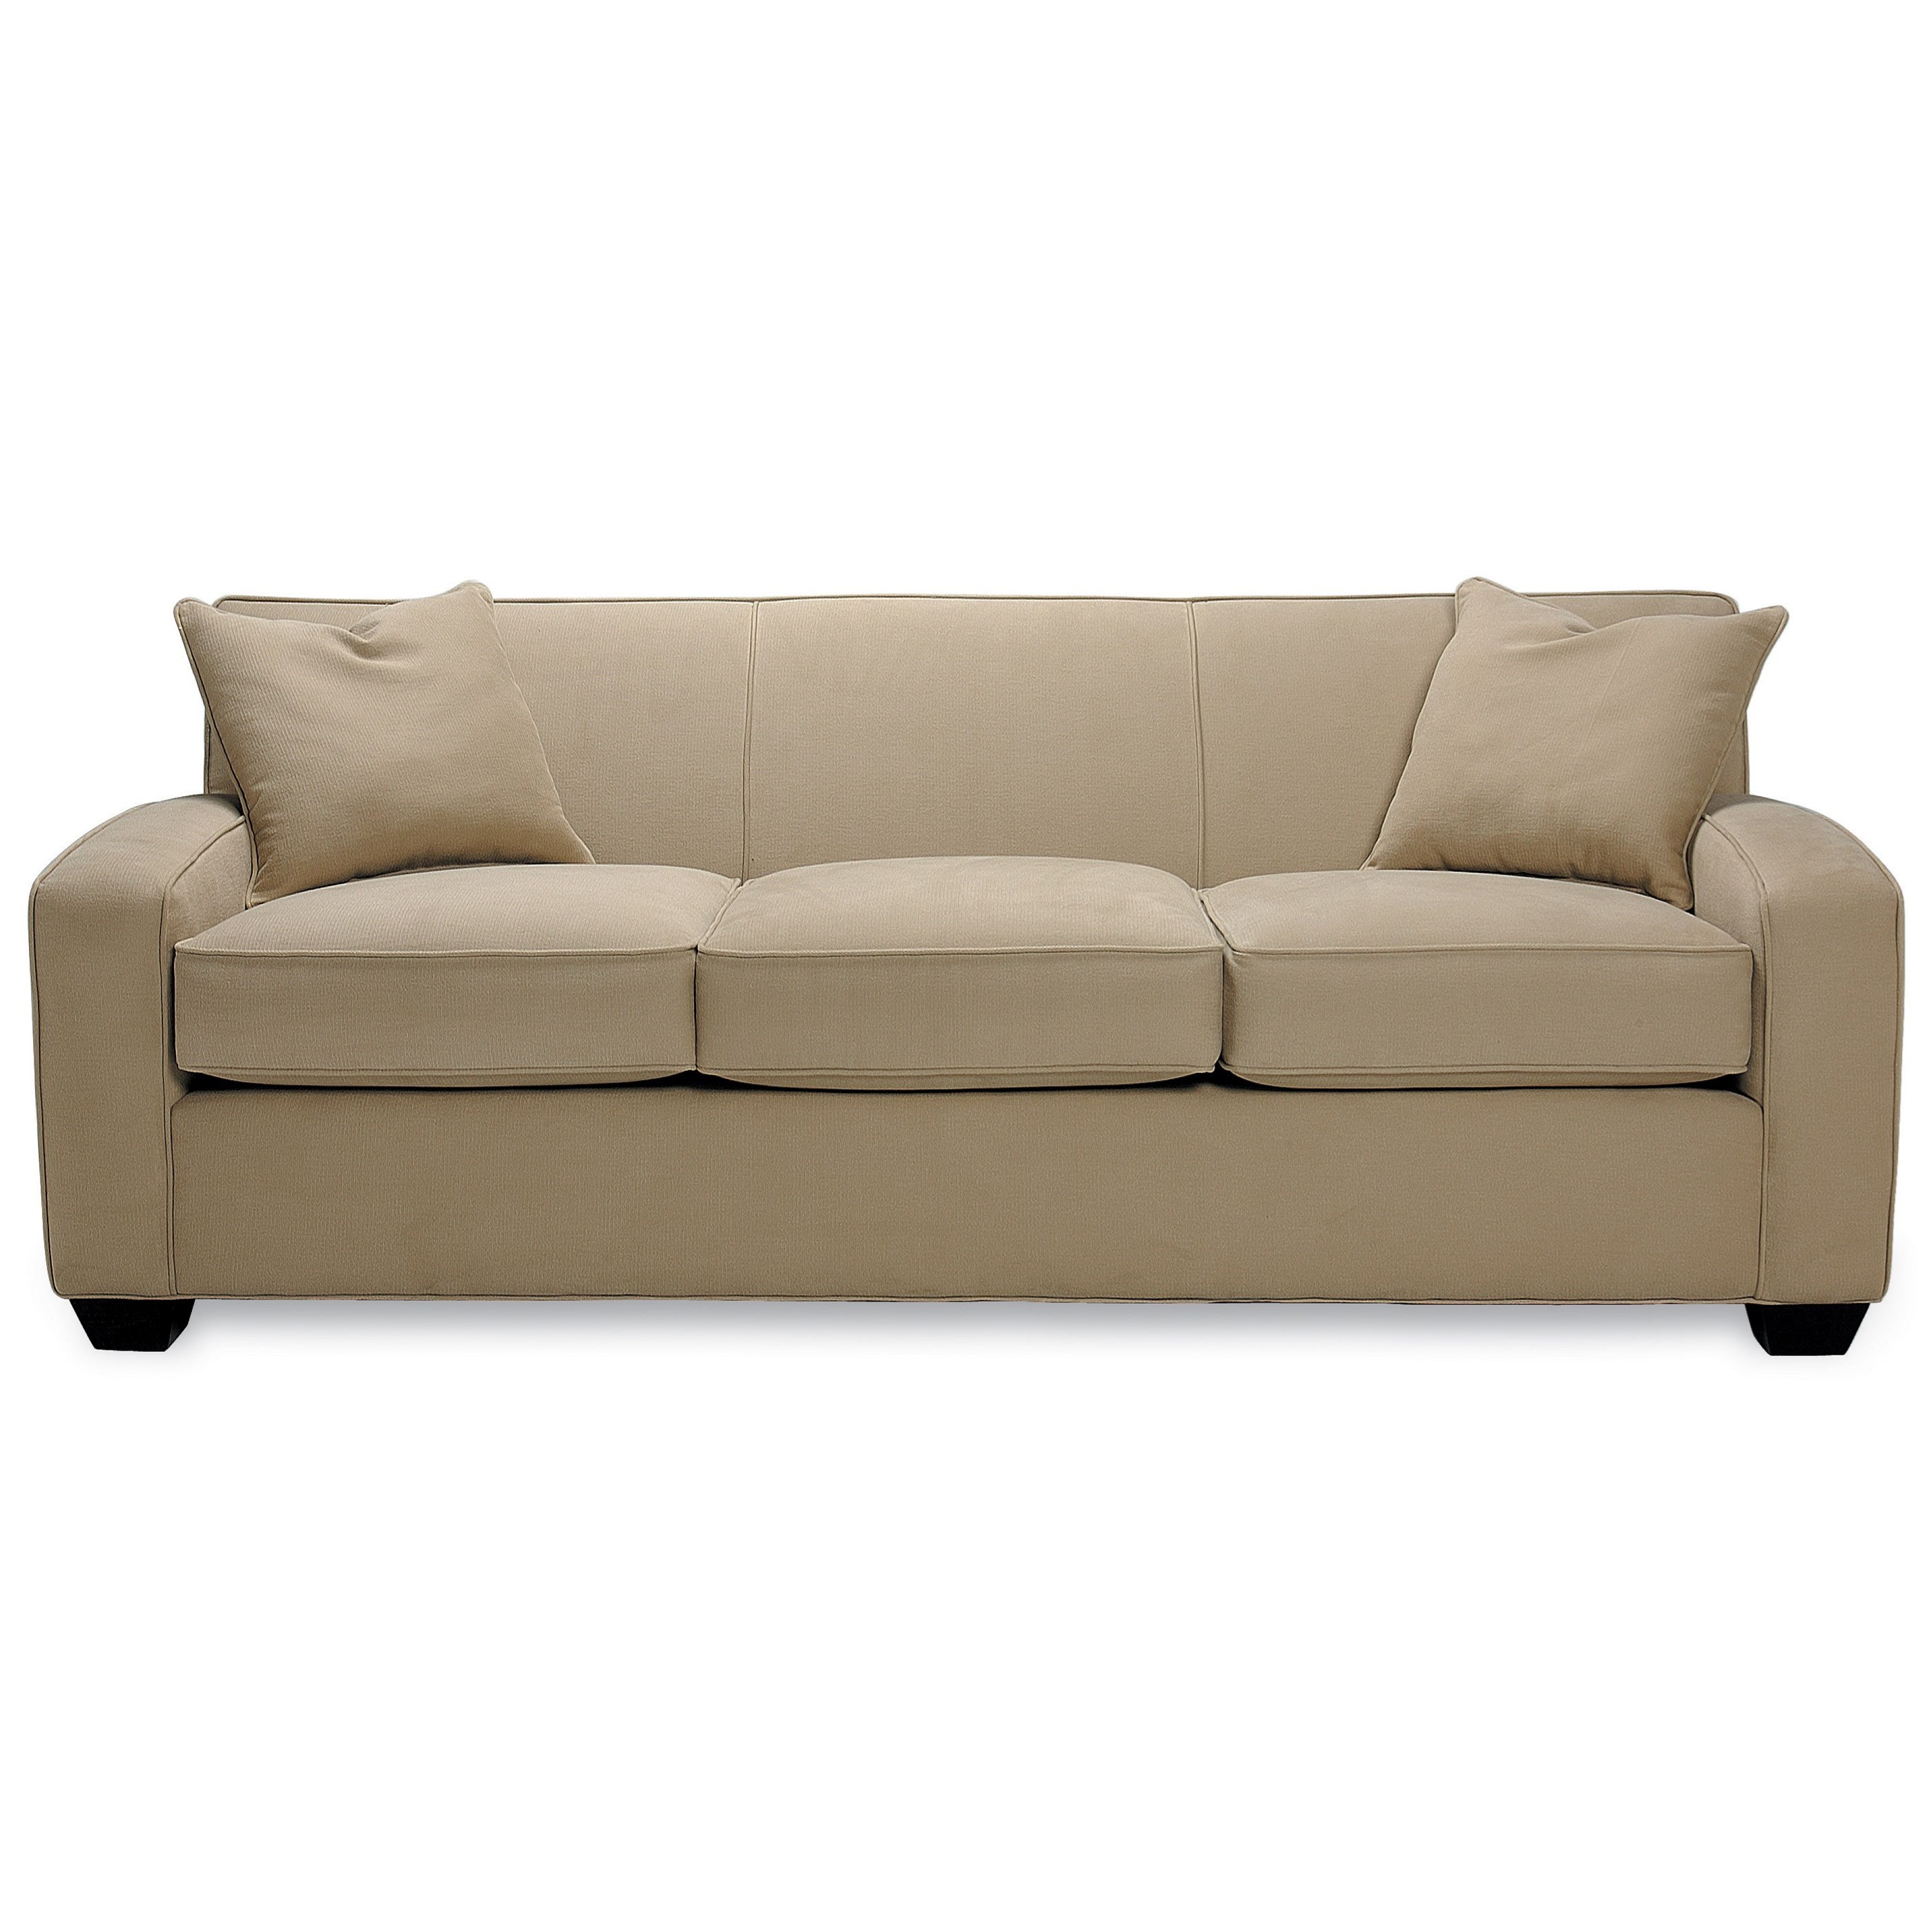 Horizon Sofa Sleeper by Rowe at Bullard Furniture